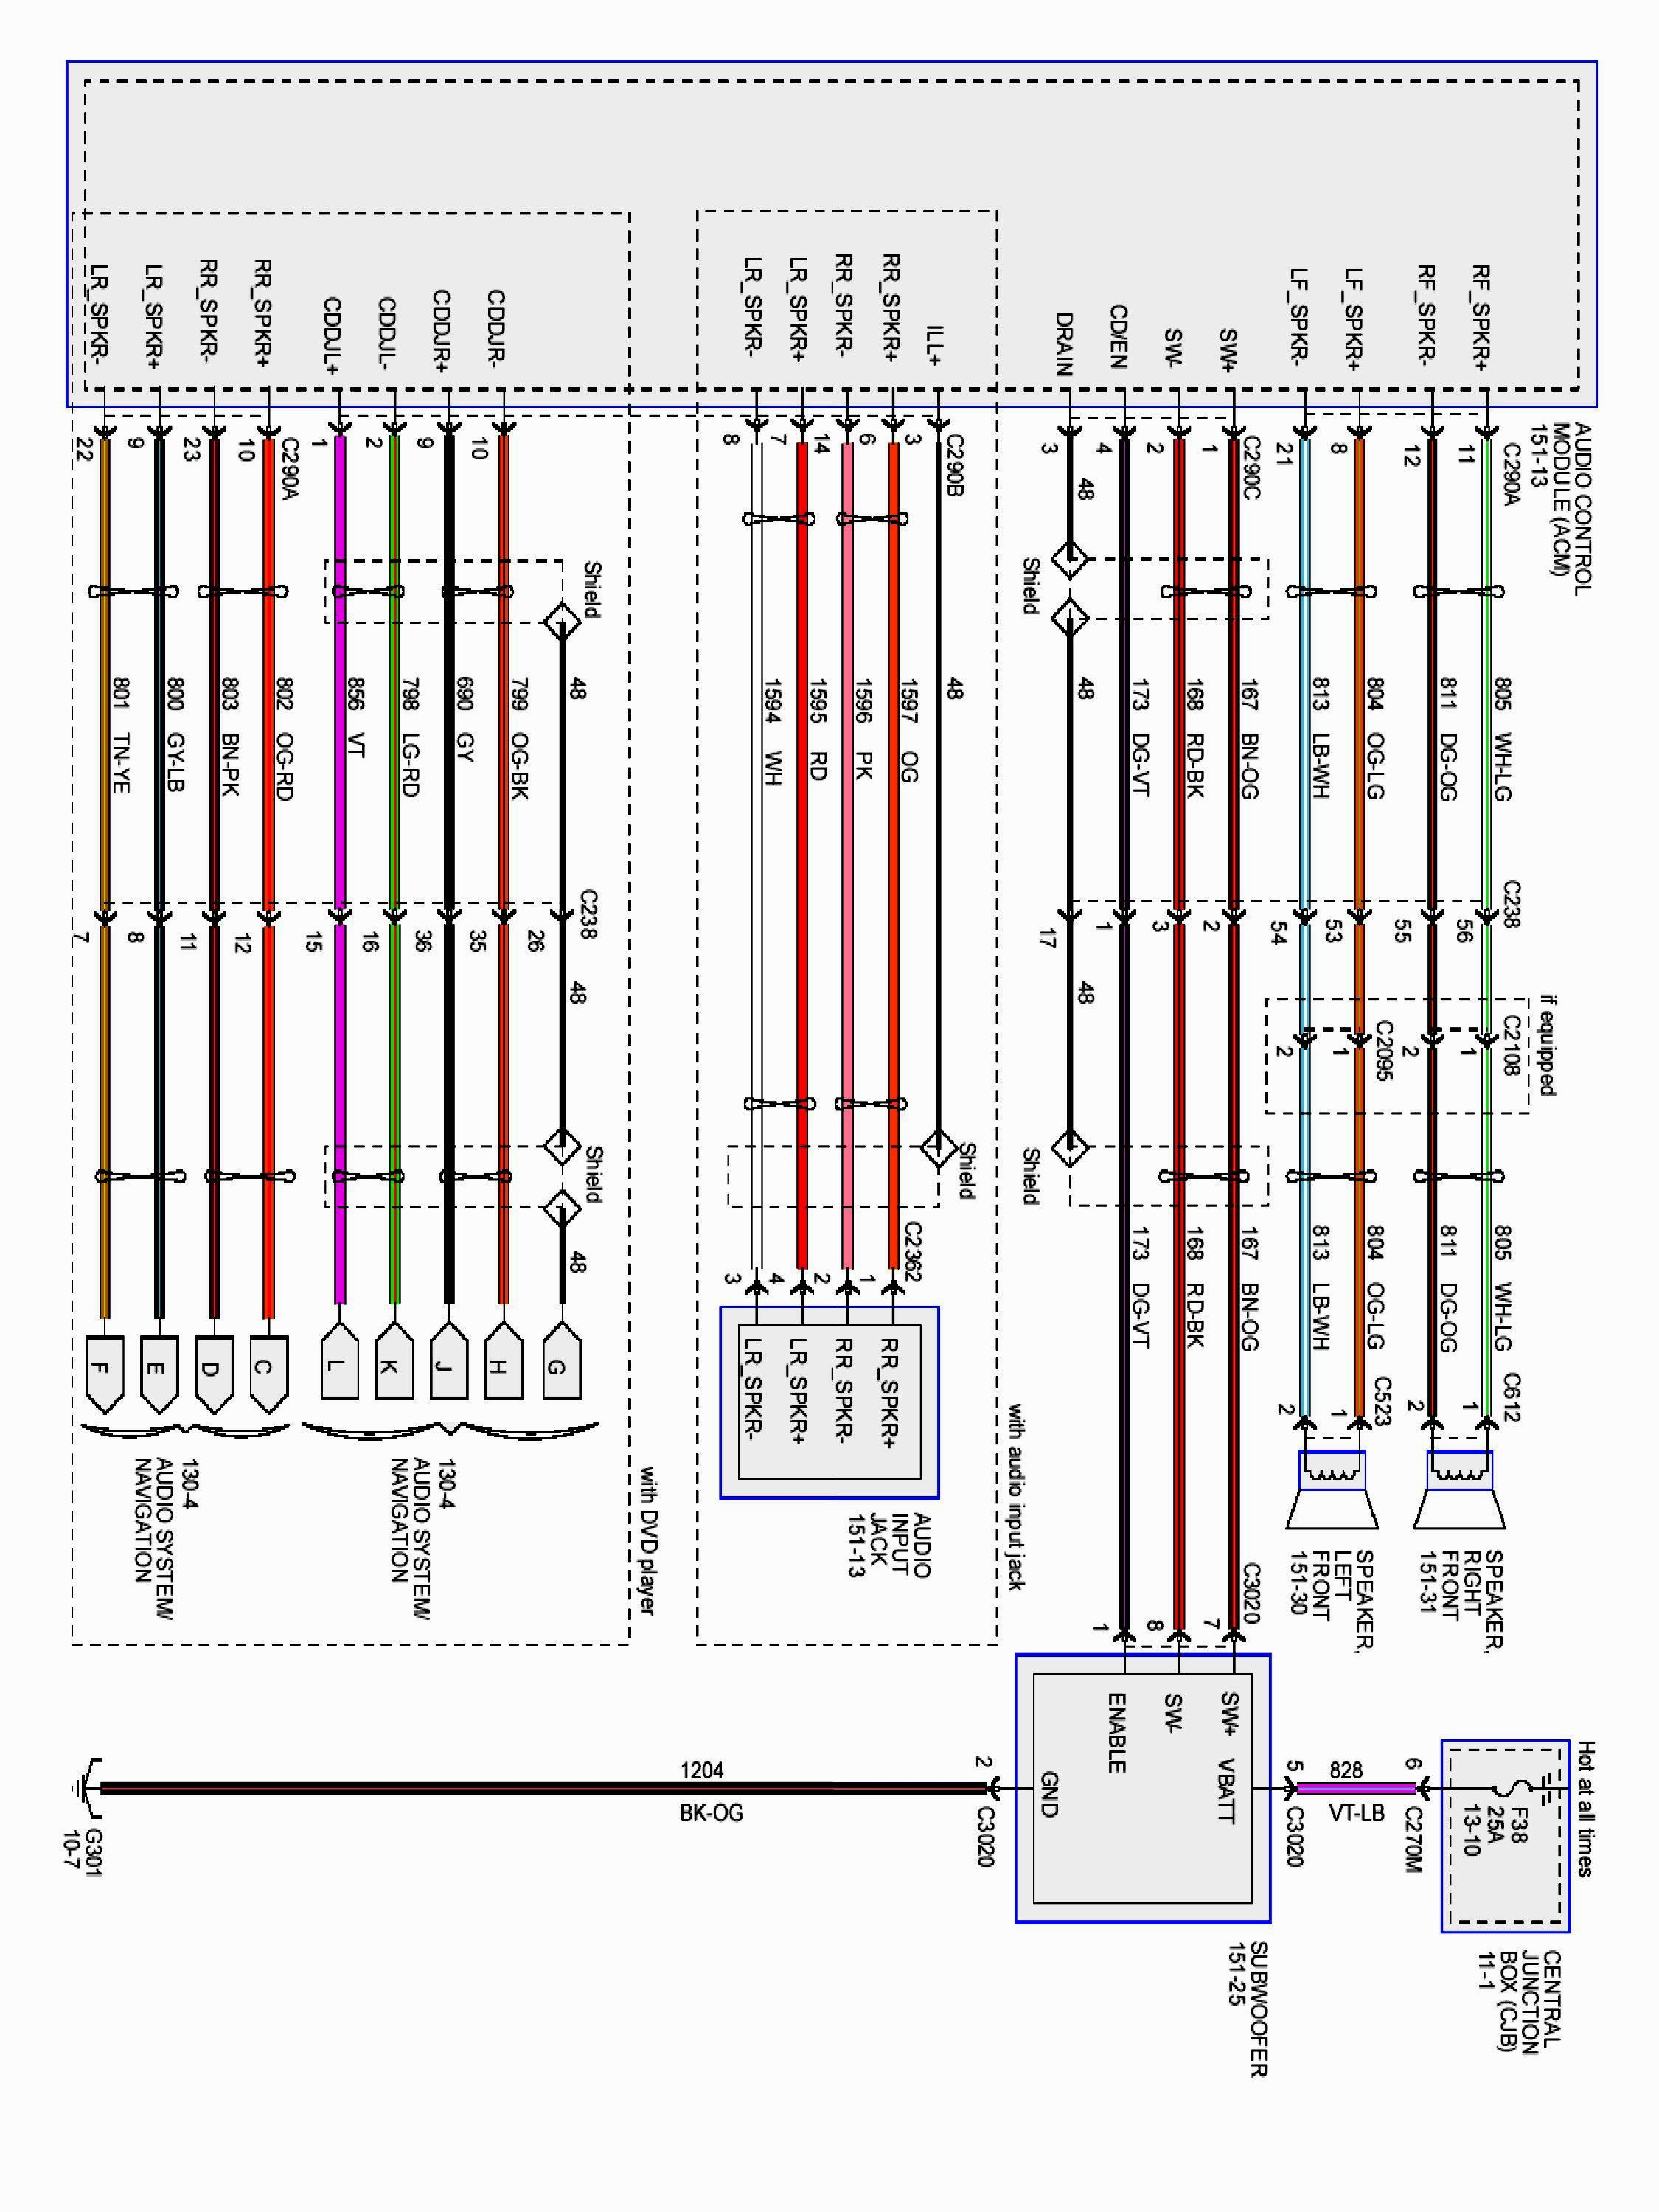 Ford F150 Wiring Diagram 4 Ford Expedition 2004 Ford F150 Diagram